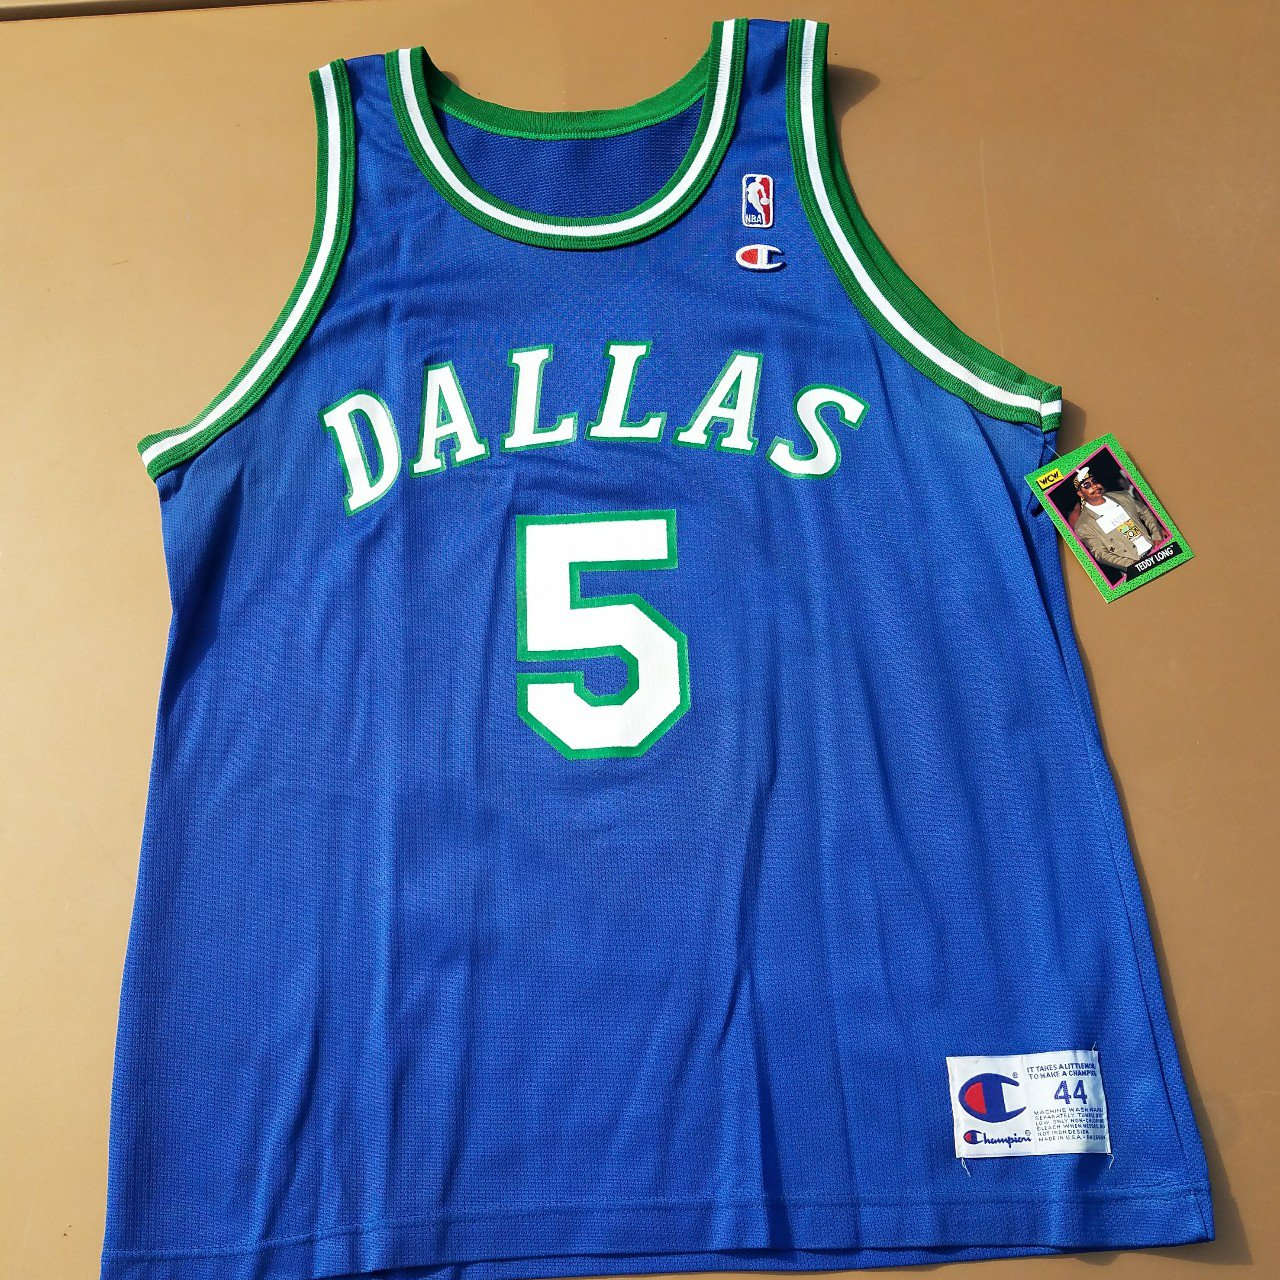 52910b56 @beyourselfvintage. 9 months ago. Piscataway Township, Middlesex County,  United States. Jason Kidd Dallas Mavericks Jersey size 44